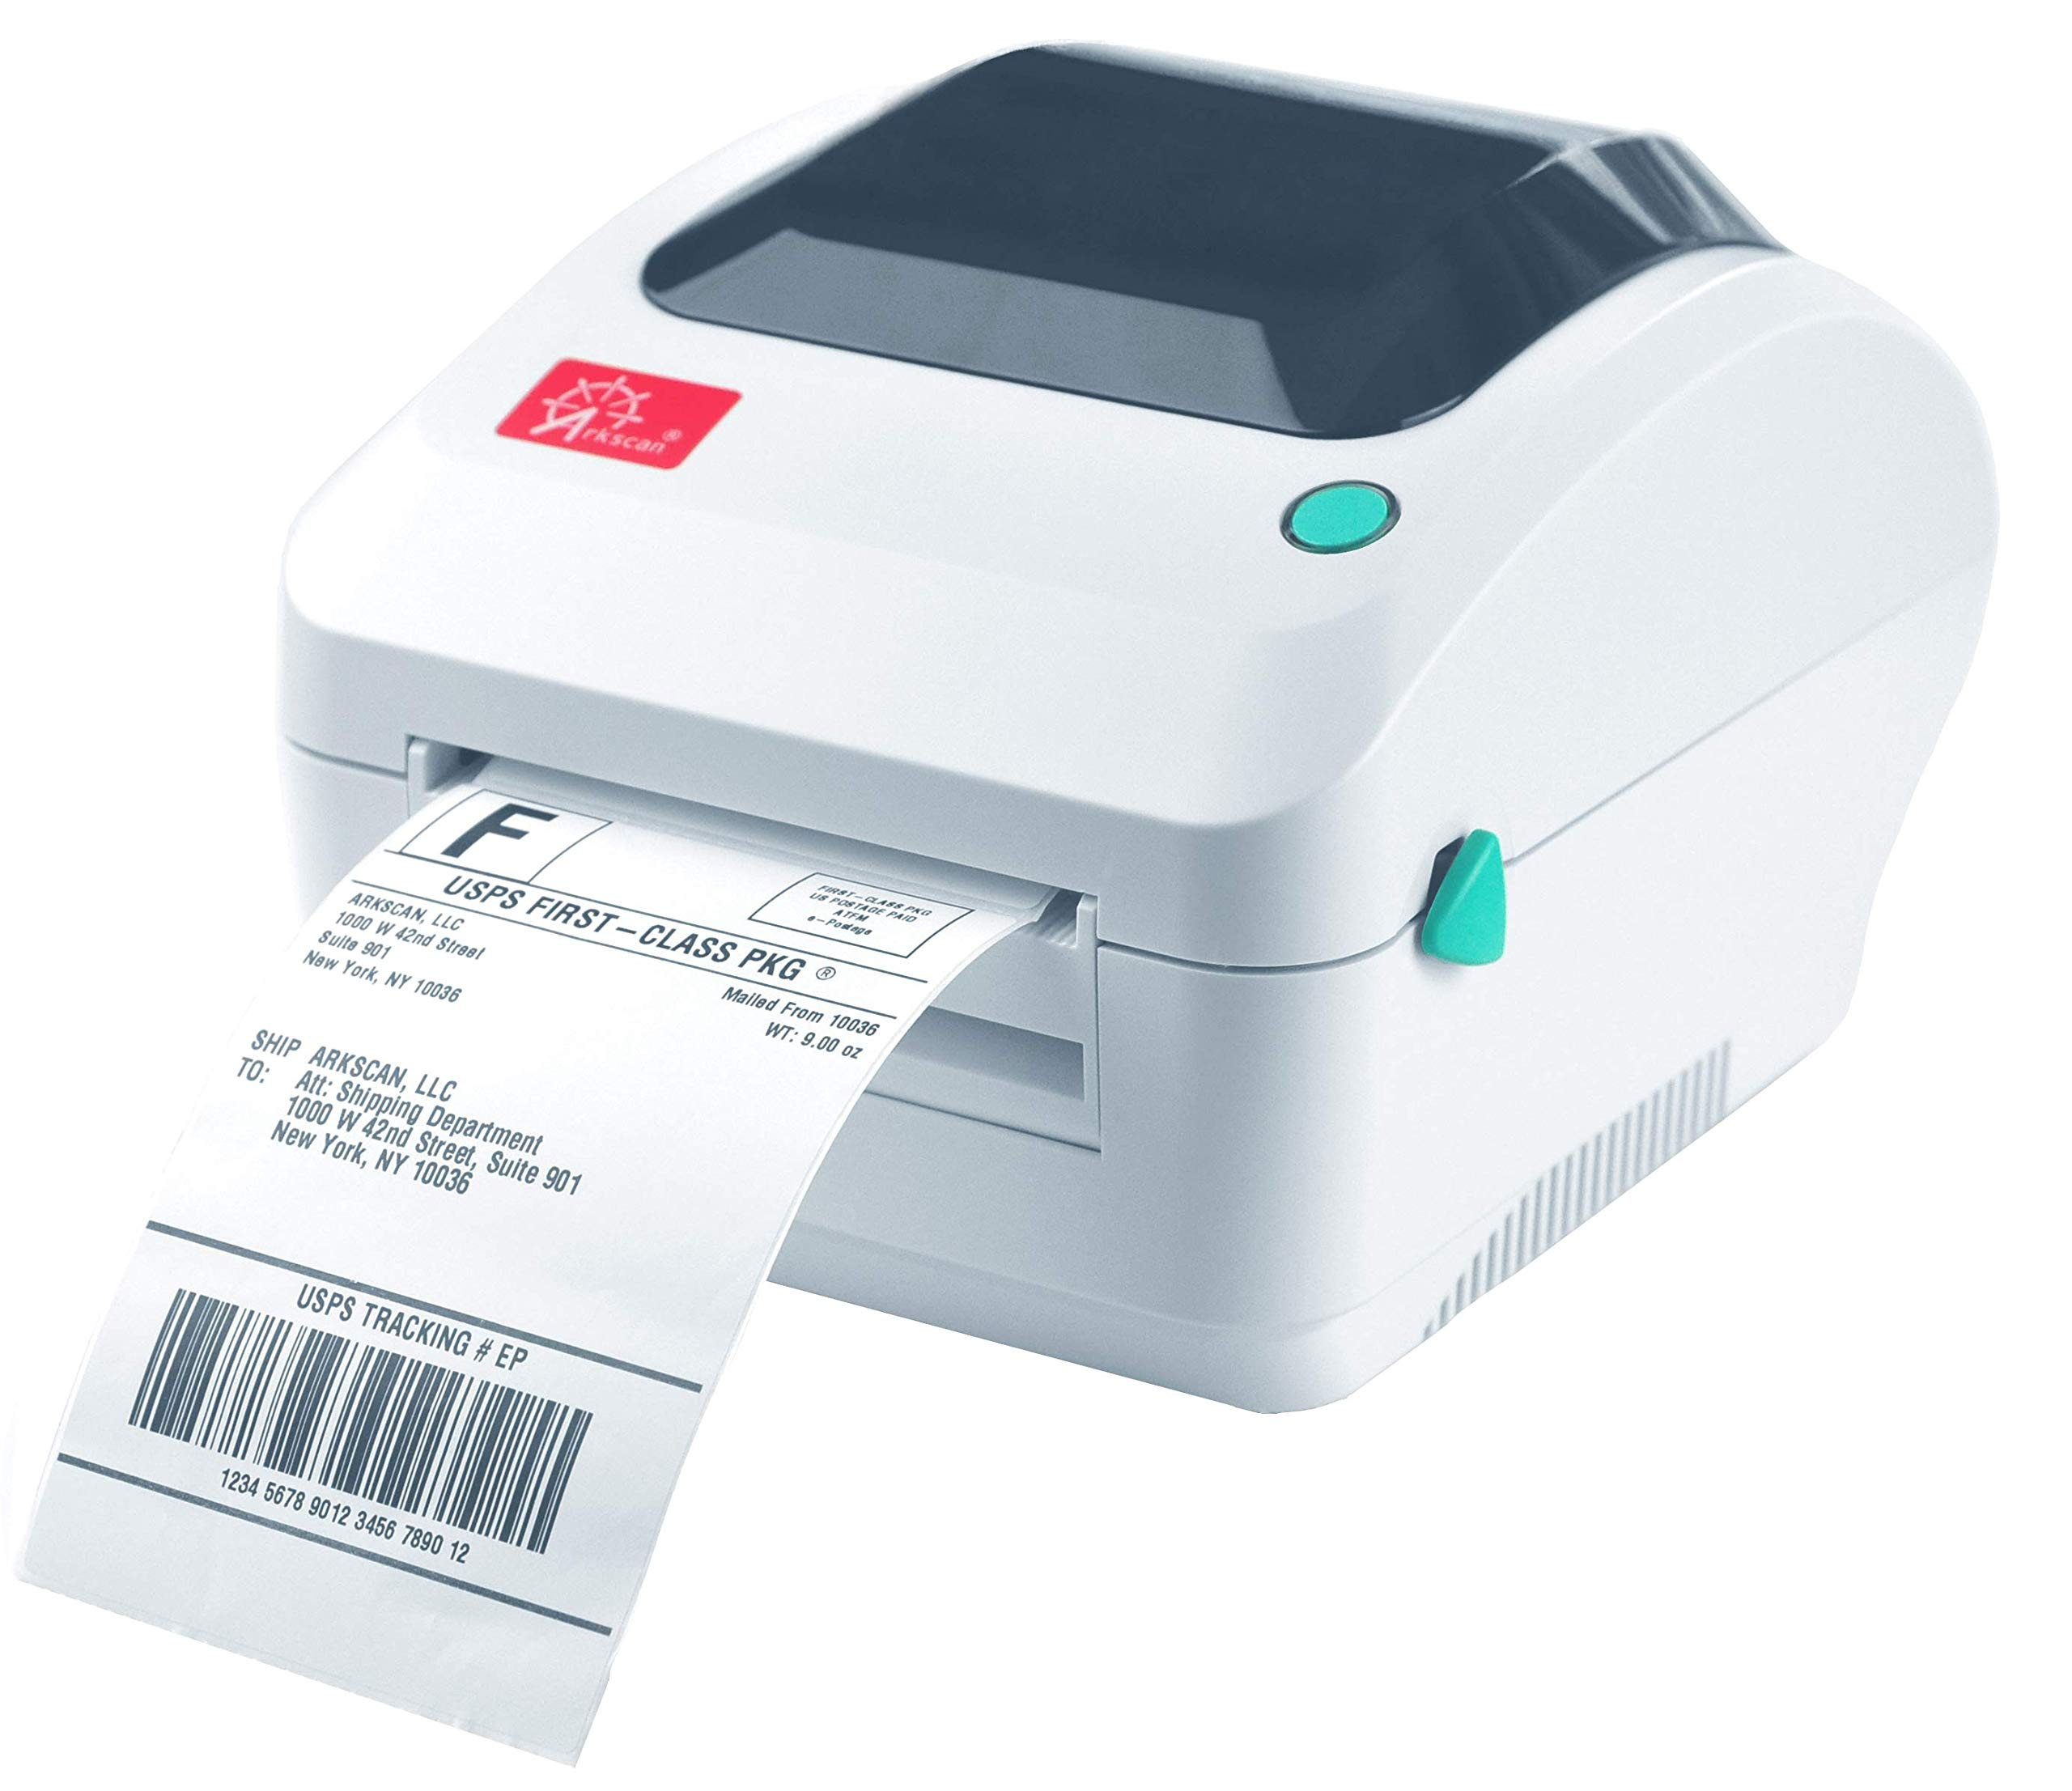 Amazon Com Arkscan 2054a Shipping Label Printer Support Amazon Ebay Paypal Etsy Shopify Shipstation Stamps Com Ups Usps Fedex Dhl On Windows Mac Roll Fanfold Thermal Direct Label For Printer 4 X